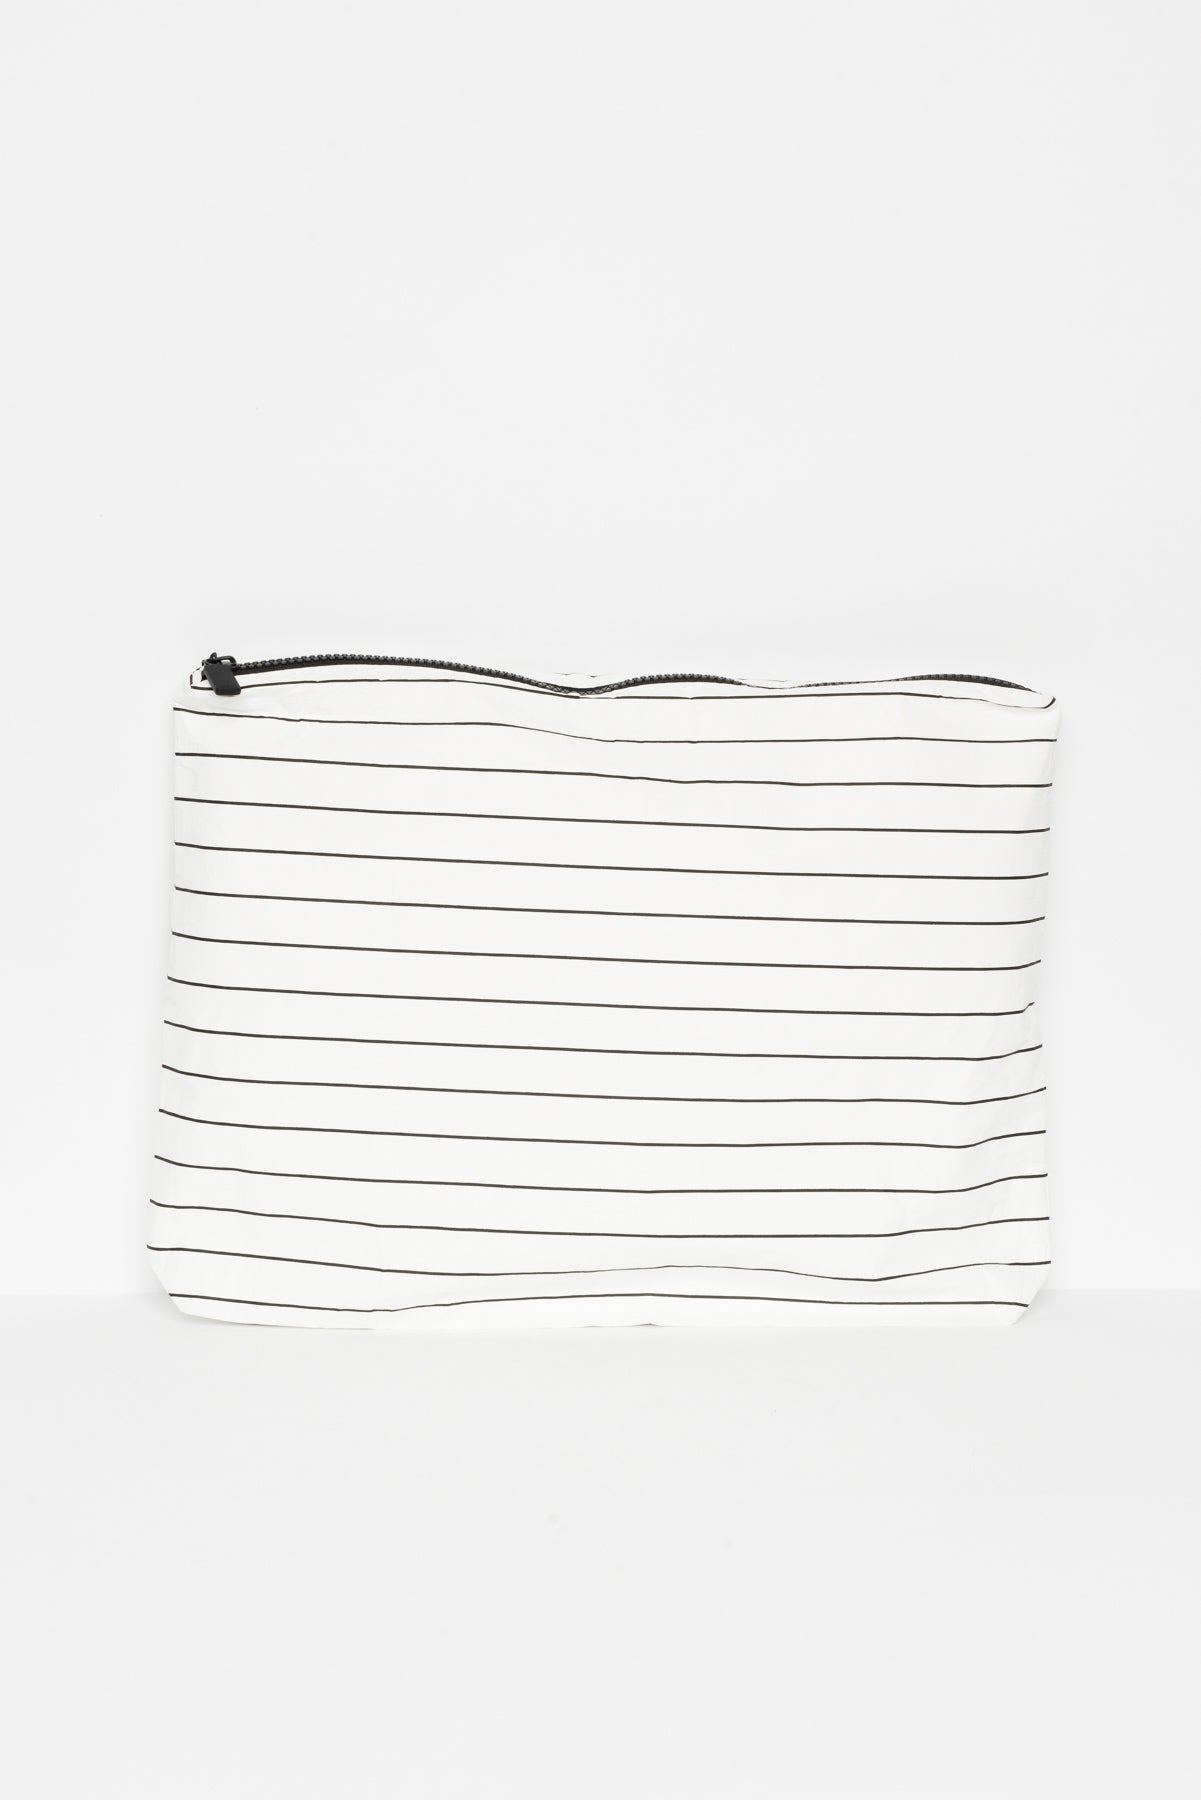 Black Stripe Splash Proof Large Pouch - Blue Bungalow